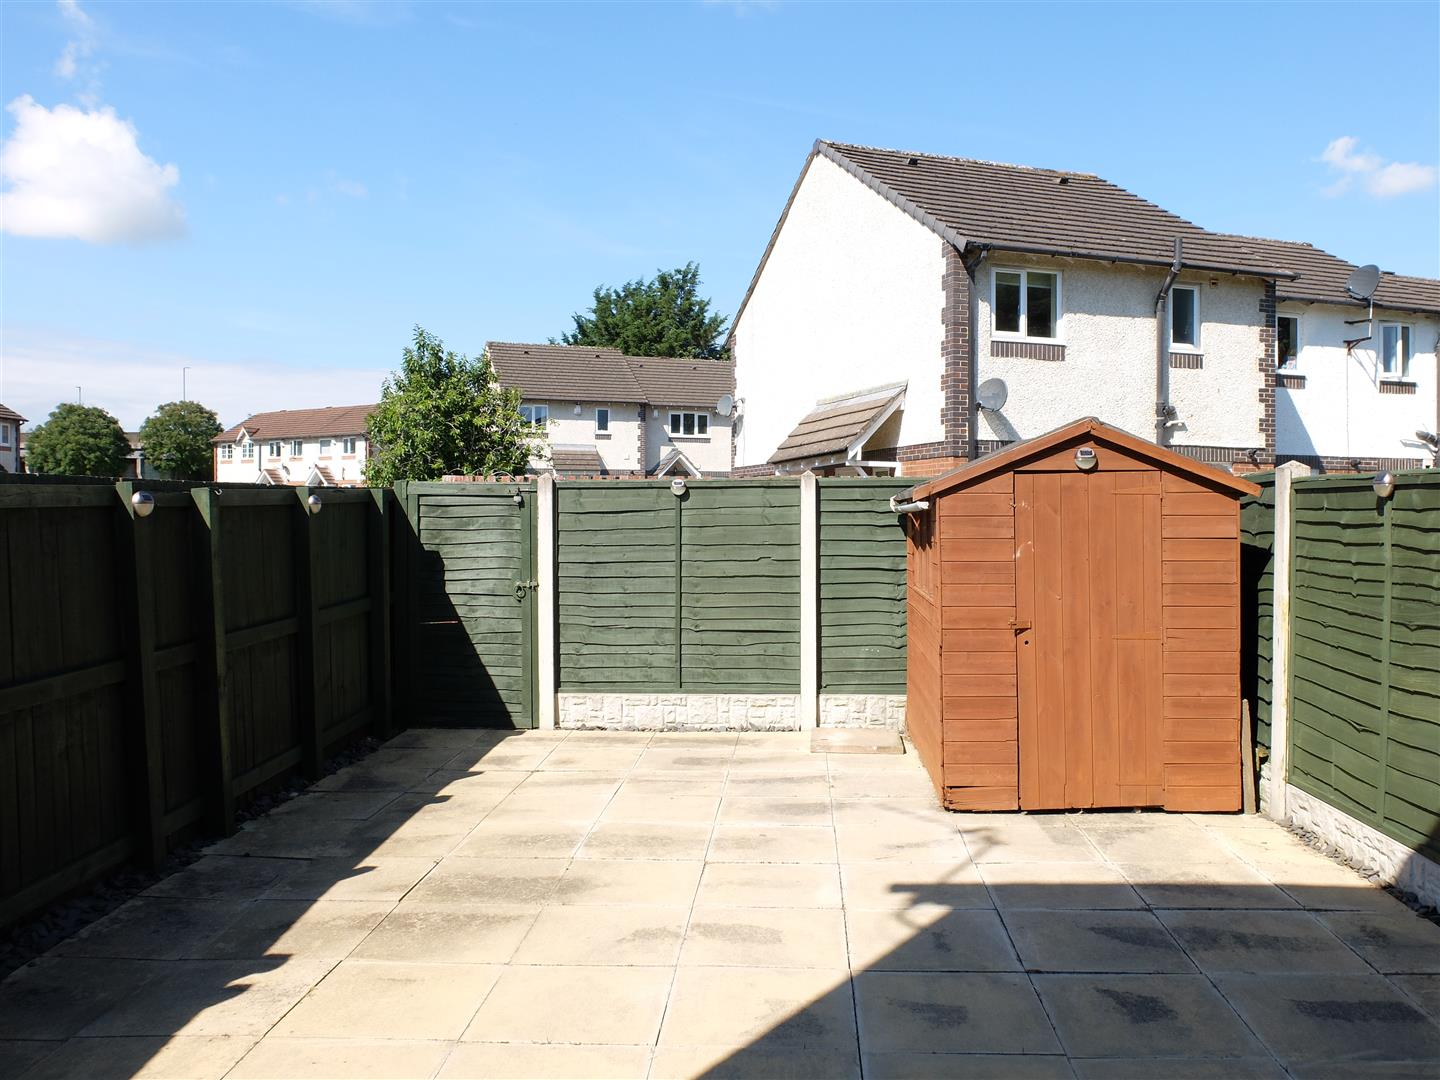 2 Bedrooms House - Semi-Detached For Sale 6 Scotby Gardens Carlisle